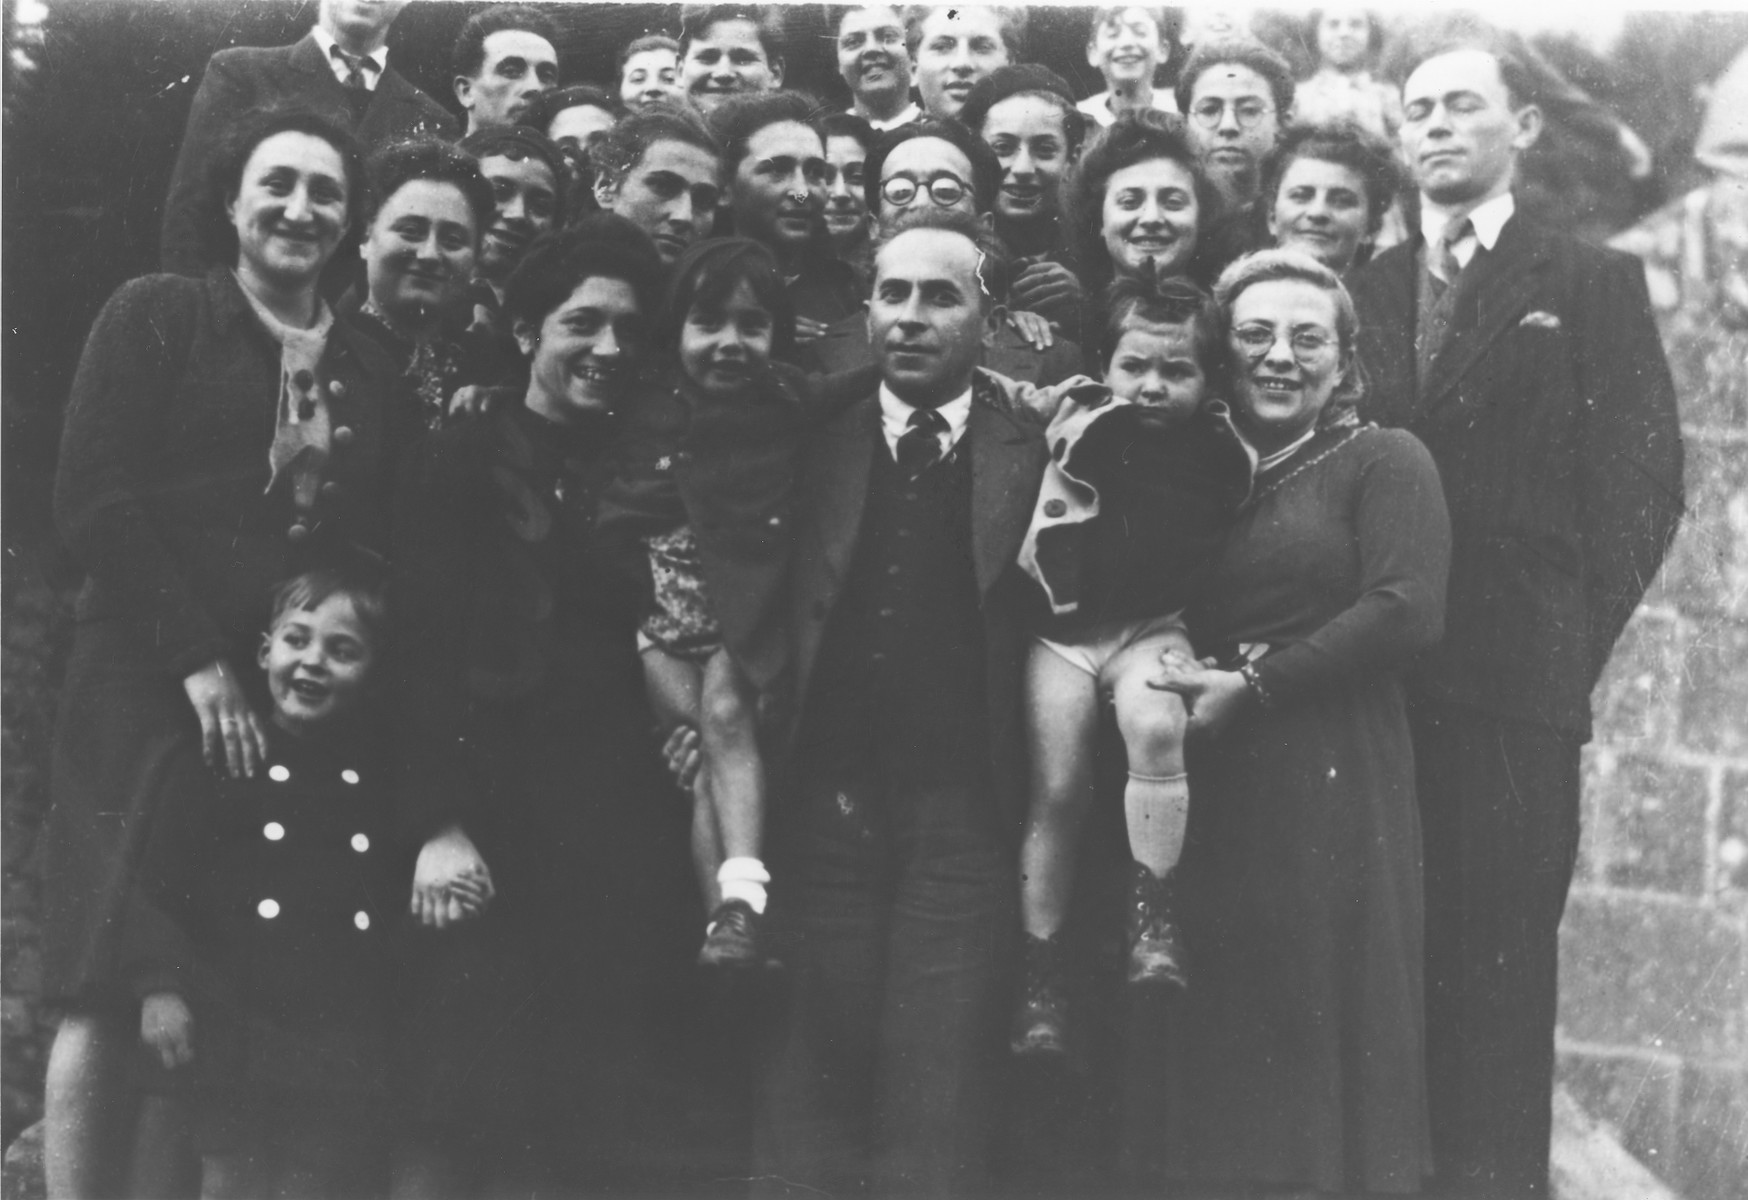 Group portrait of the children and staff of the OSE (Oeuvre de Secours aux Enfants) children's home in Masgelier.  Among those pictured are Hans Hirschberg, Dr. and Gertrude Blumenstock, Kurt Leuchter, Theo Brenig and Isidor and Louba Pudermacher, Boris, Luba and Isidor.